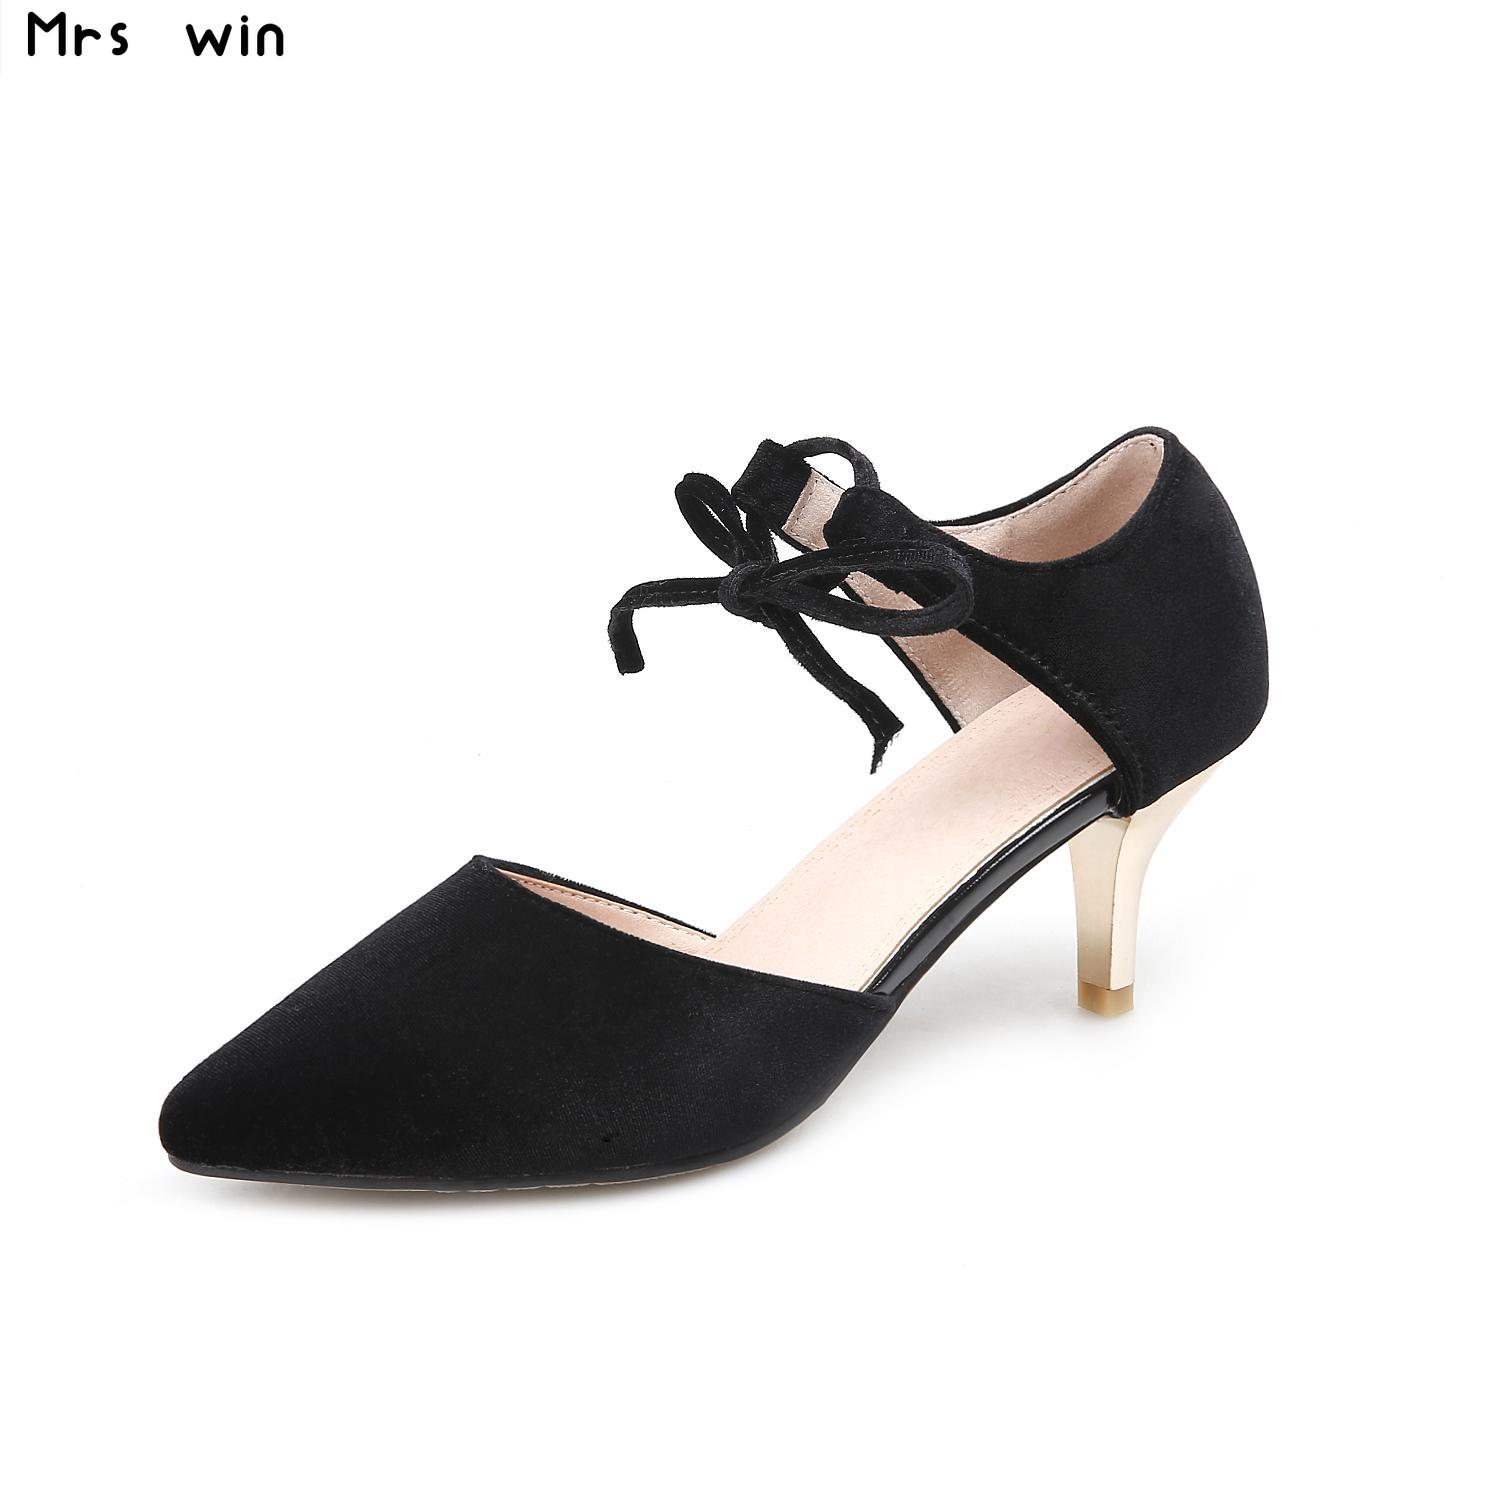 Women high Heel Vintage Shoes Woman Classics Pointed Toe thin Heels Pumps Ladies Fashion Strap Heeled Shoes large Size 34-43 plus big size 34 52 shoes woman 2017 new arrival wedding ladies high heel fashion sweet dress pointed toe women pumps e 177